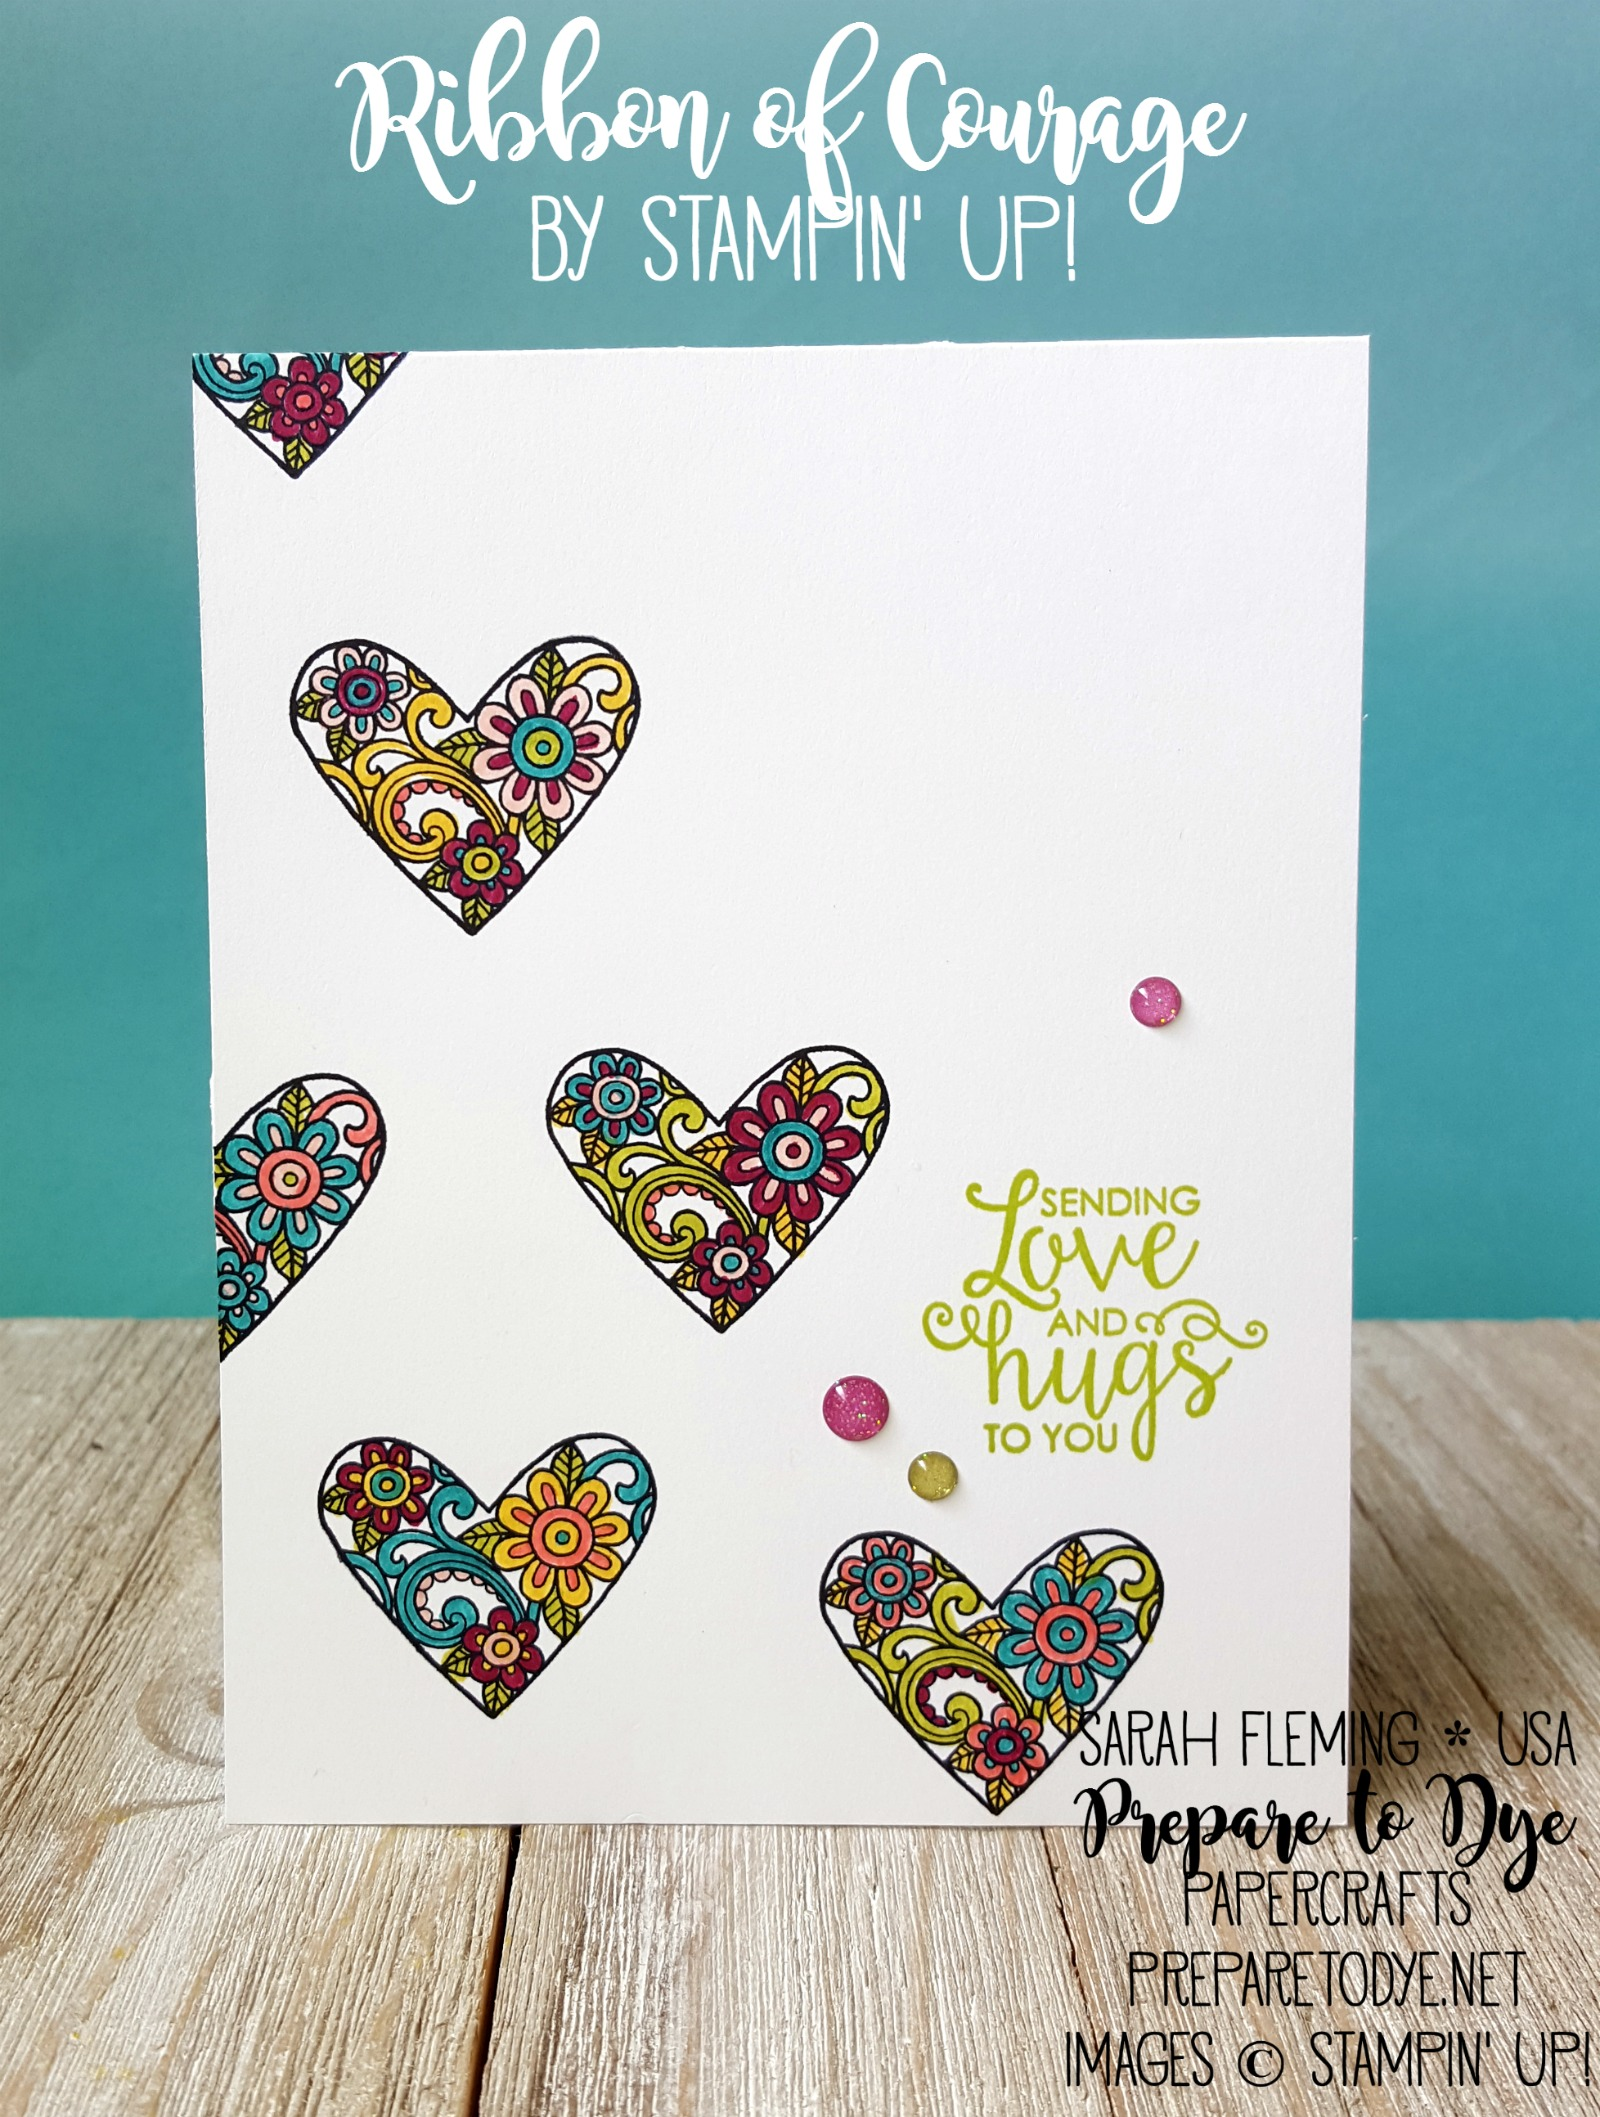 Stampin' Up! Ribbon of Courage - clean and simple handmade card - CAS - glitter enamel dots - Sarah Fleming - Prepare to Dye Papercrafts